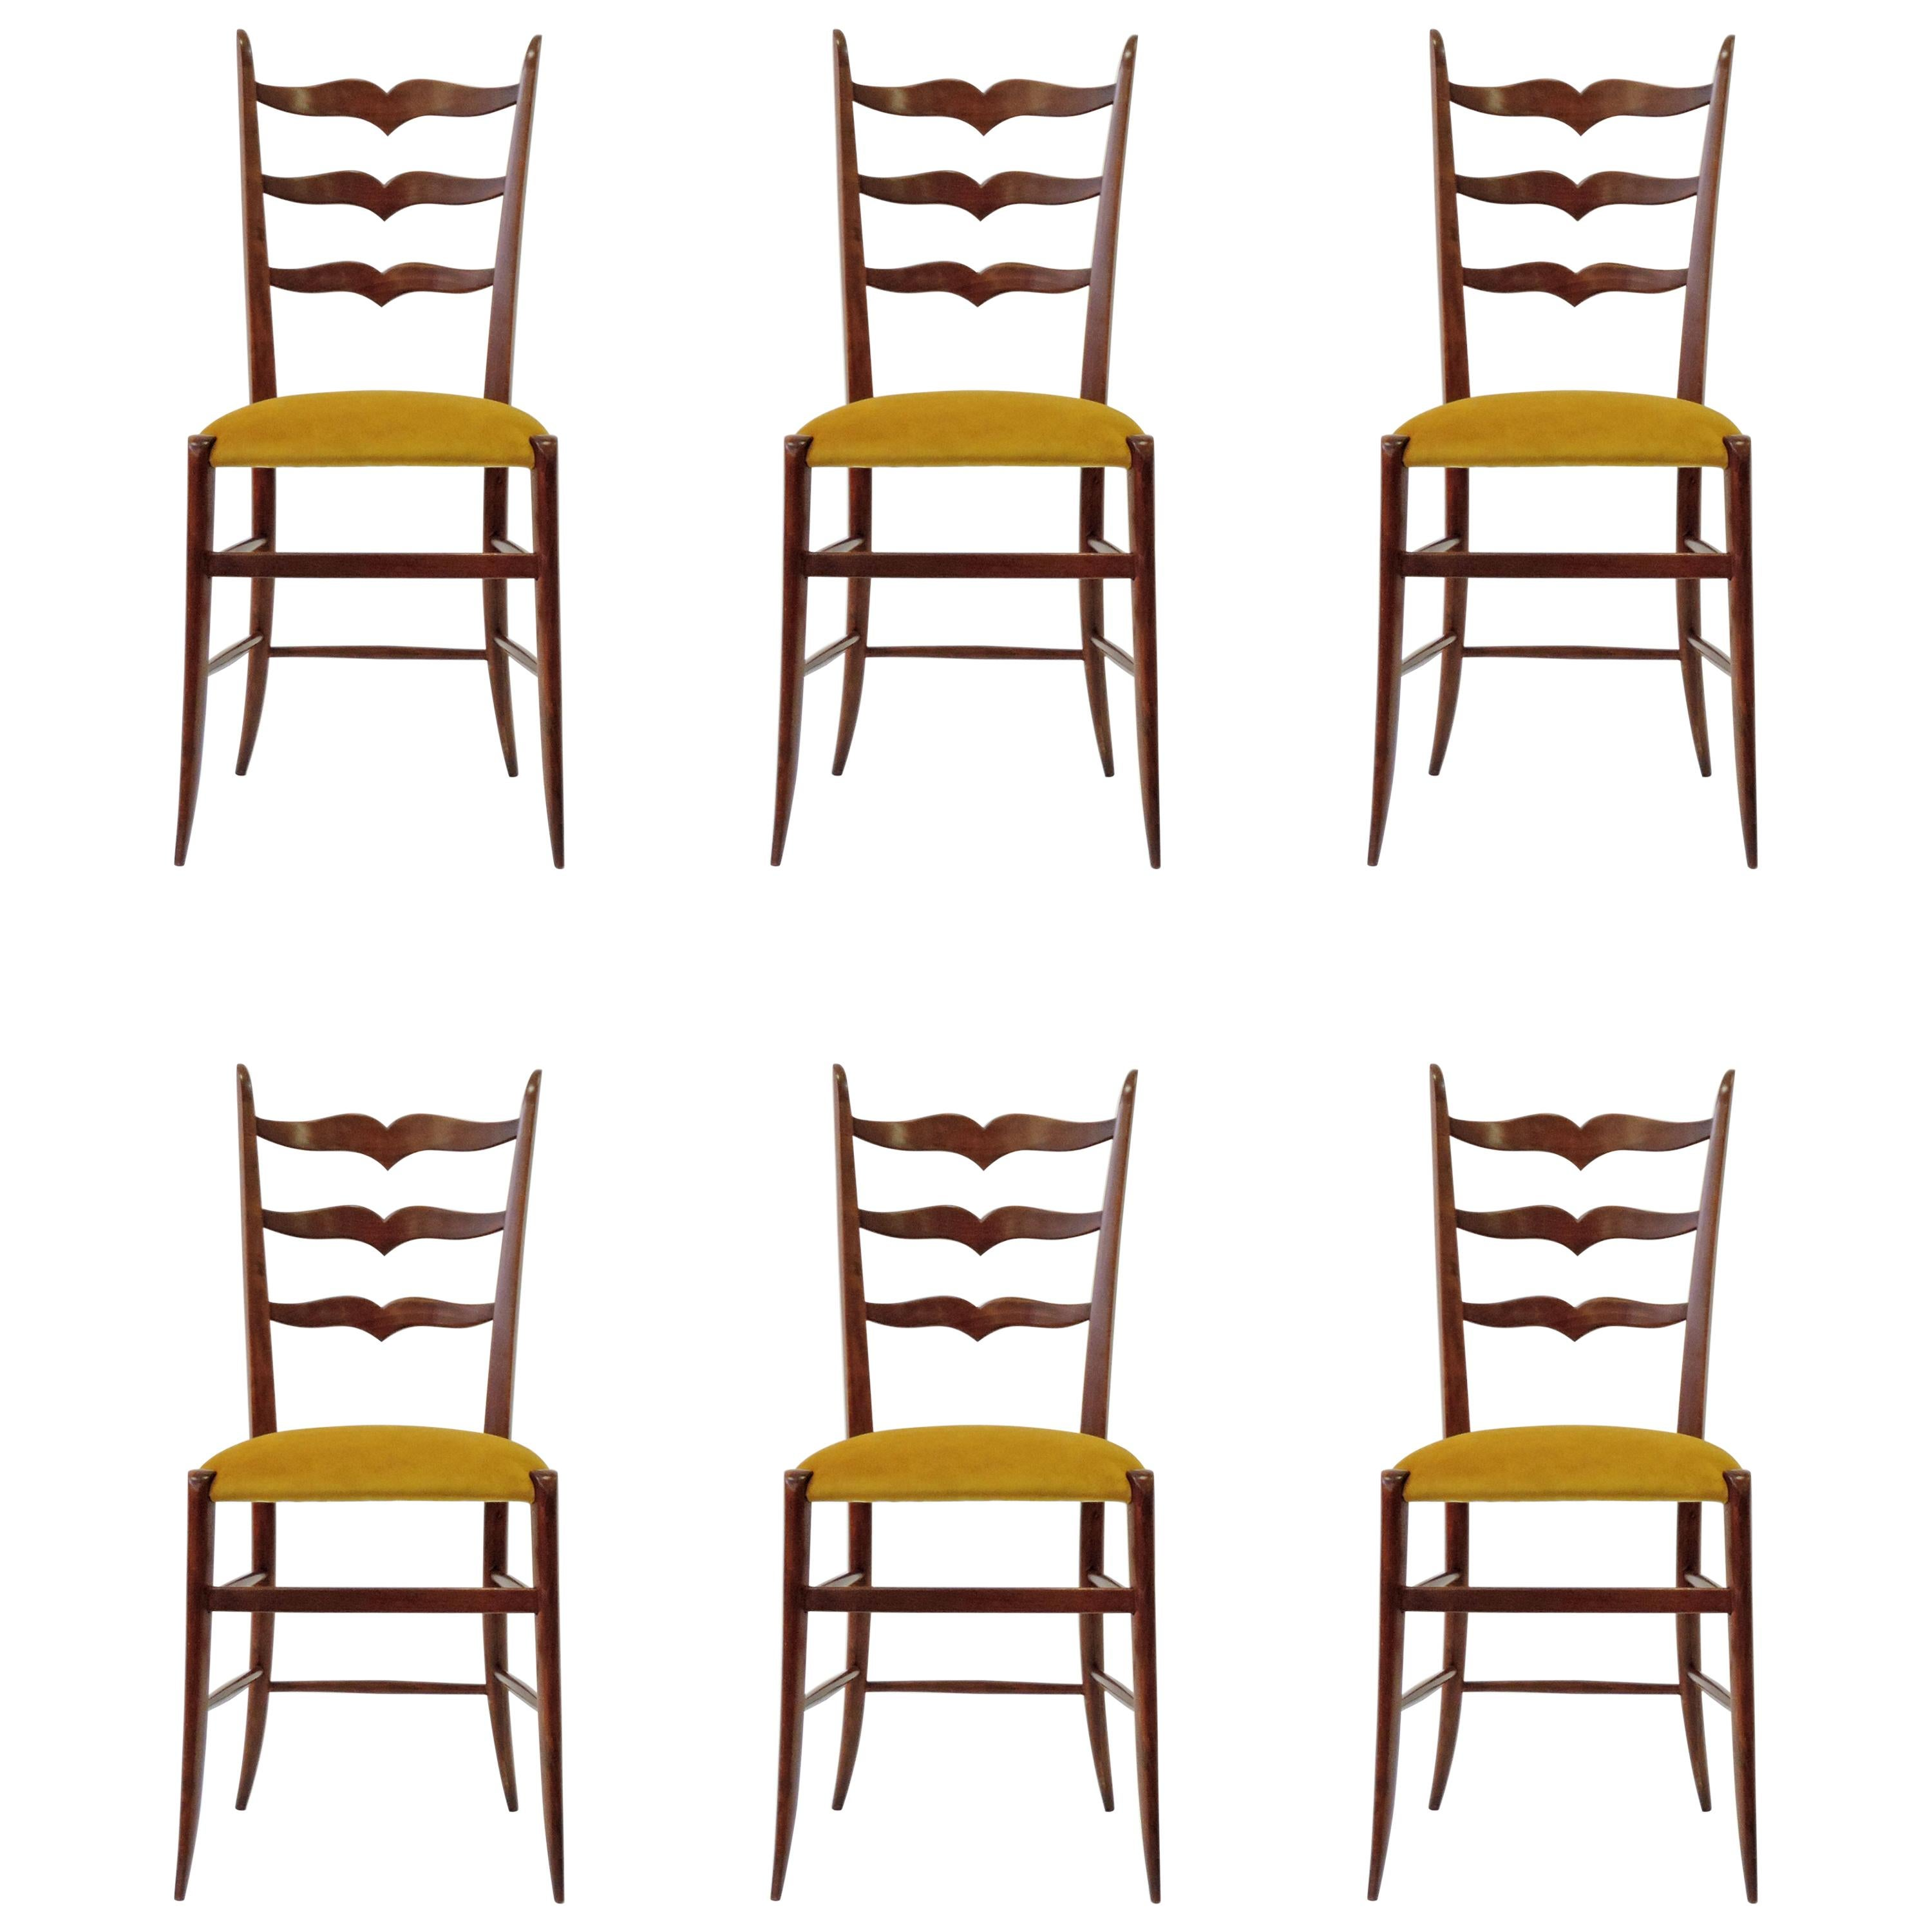 Set of Six Chiavari Dining Chairs in Wood and Yellow Velvet Seat, Italy, 1950s